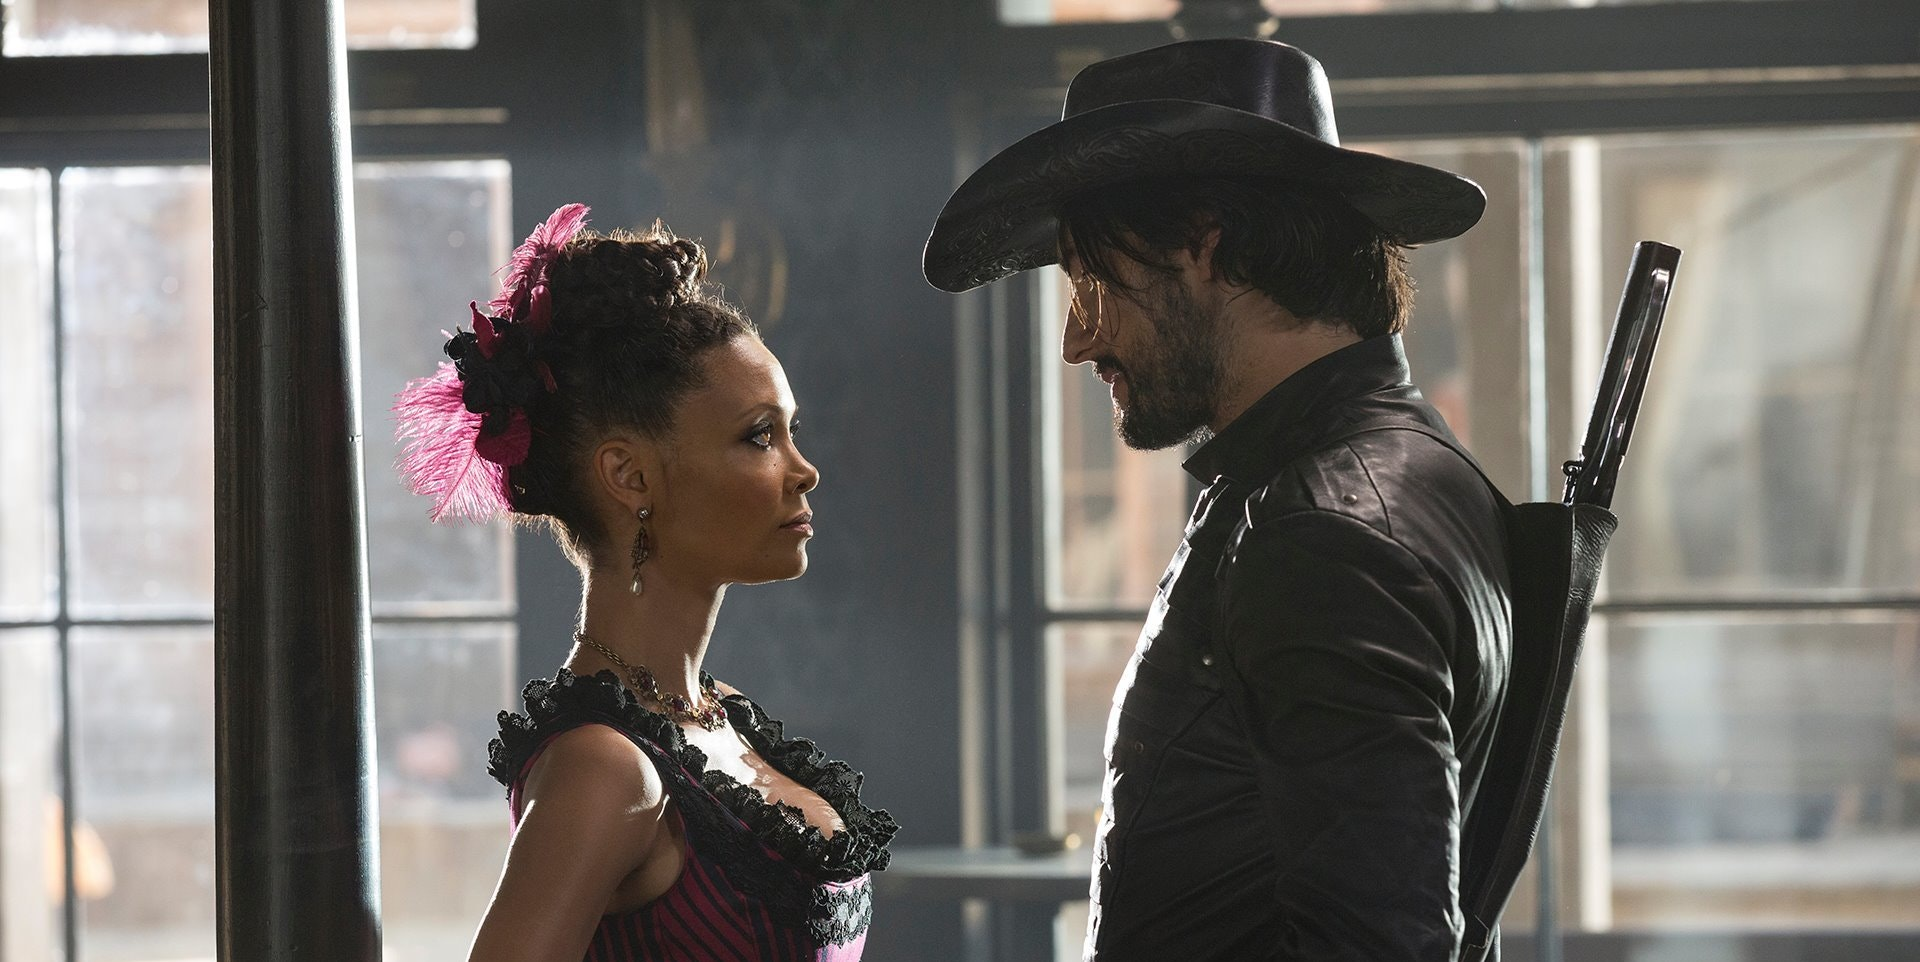 A Brief History of Robot Sex Fiction, In Honor of 'Westworld'